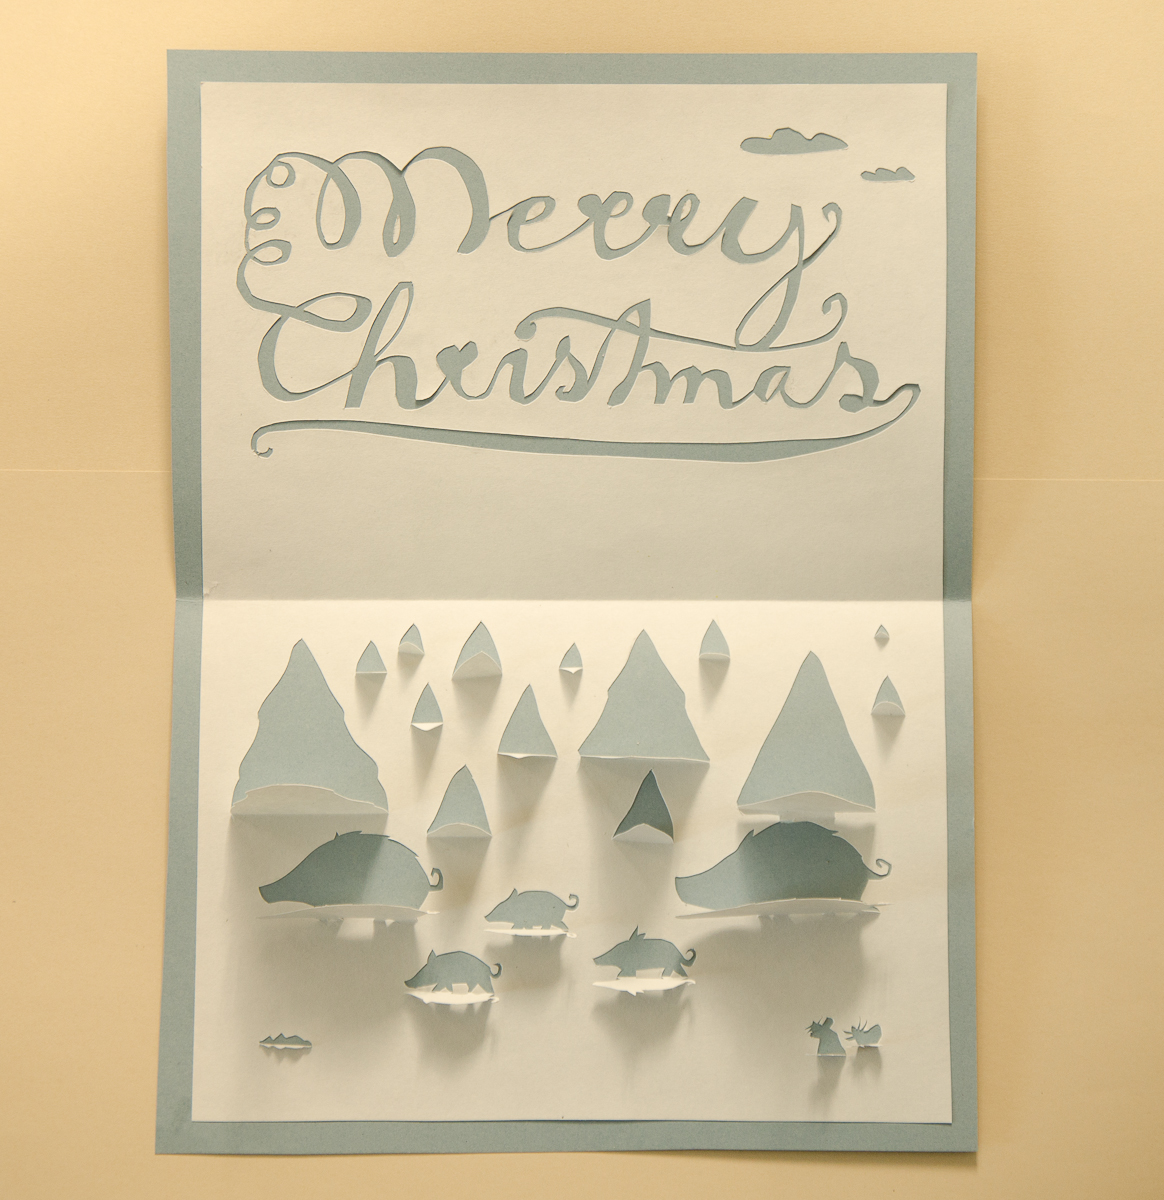 ChristmasCard_2013-3.jpg